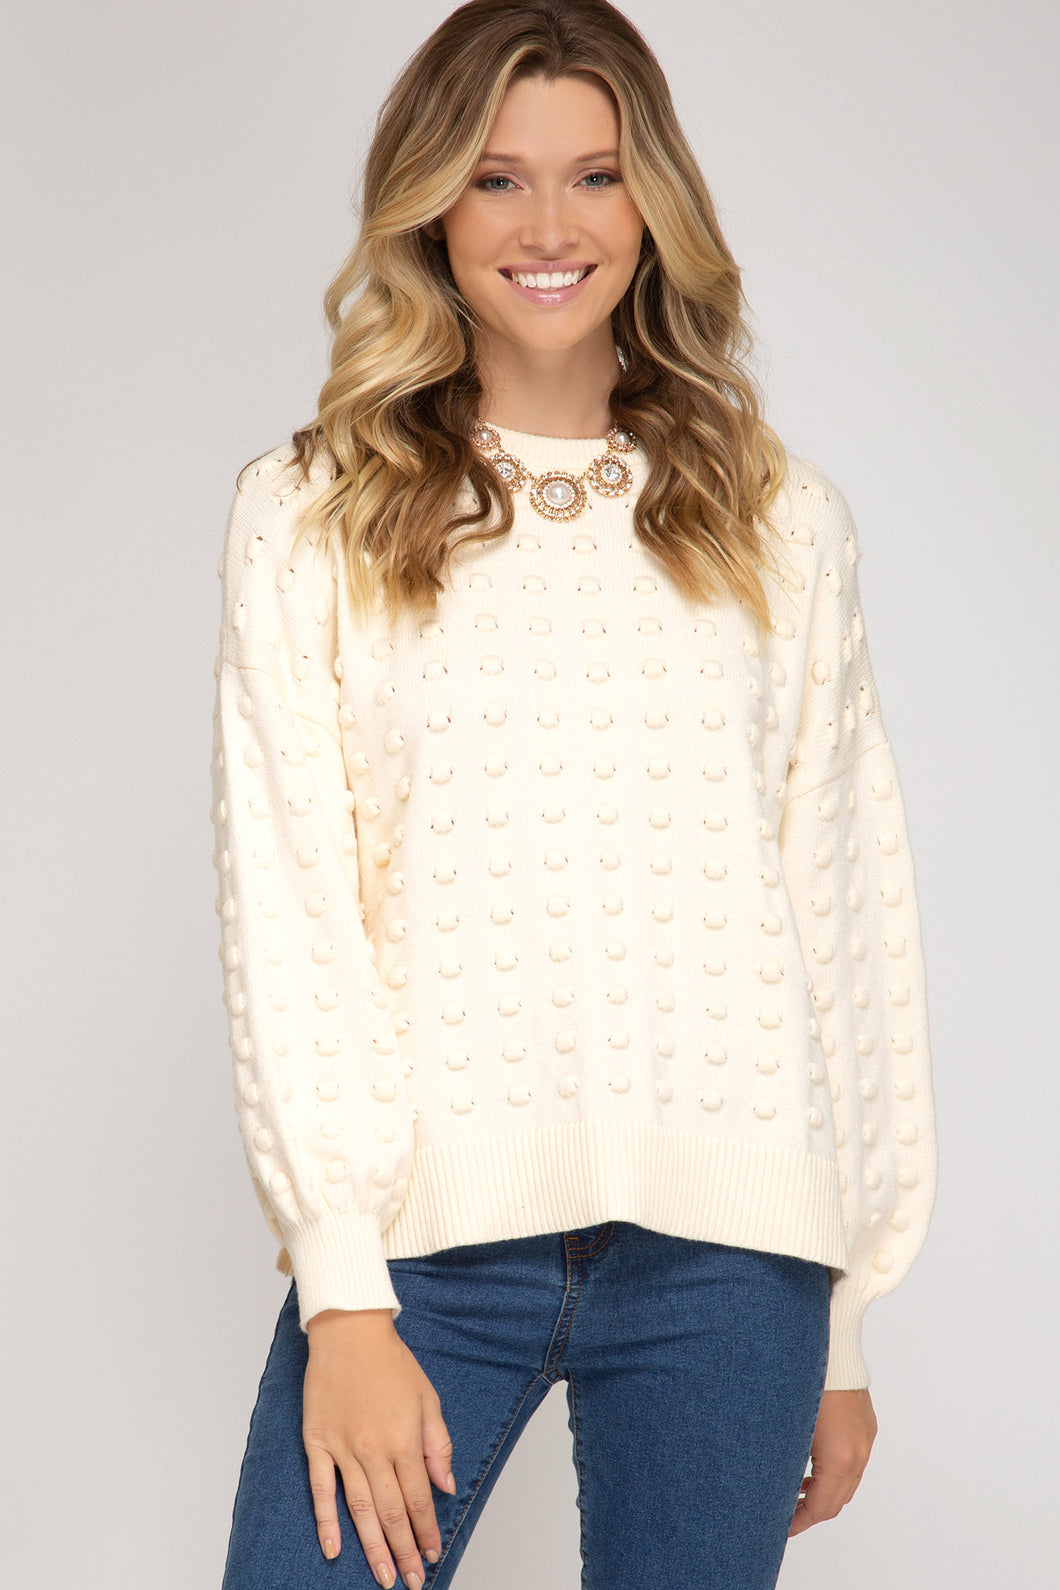 Ecru Knit Sweater